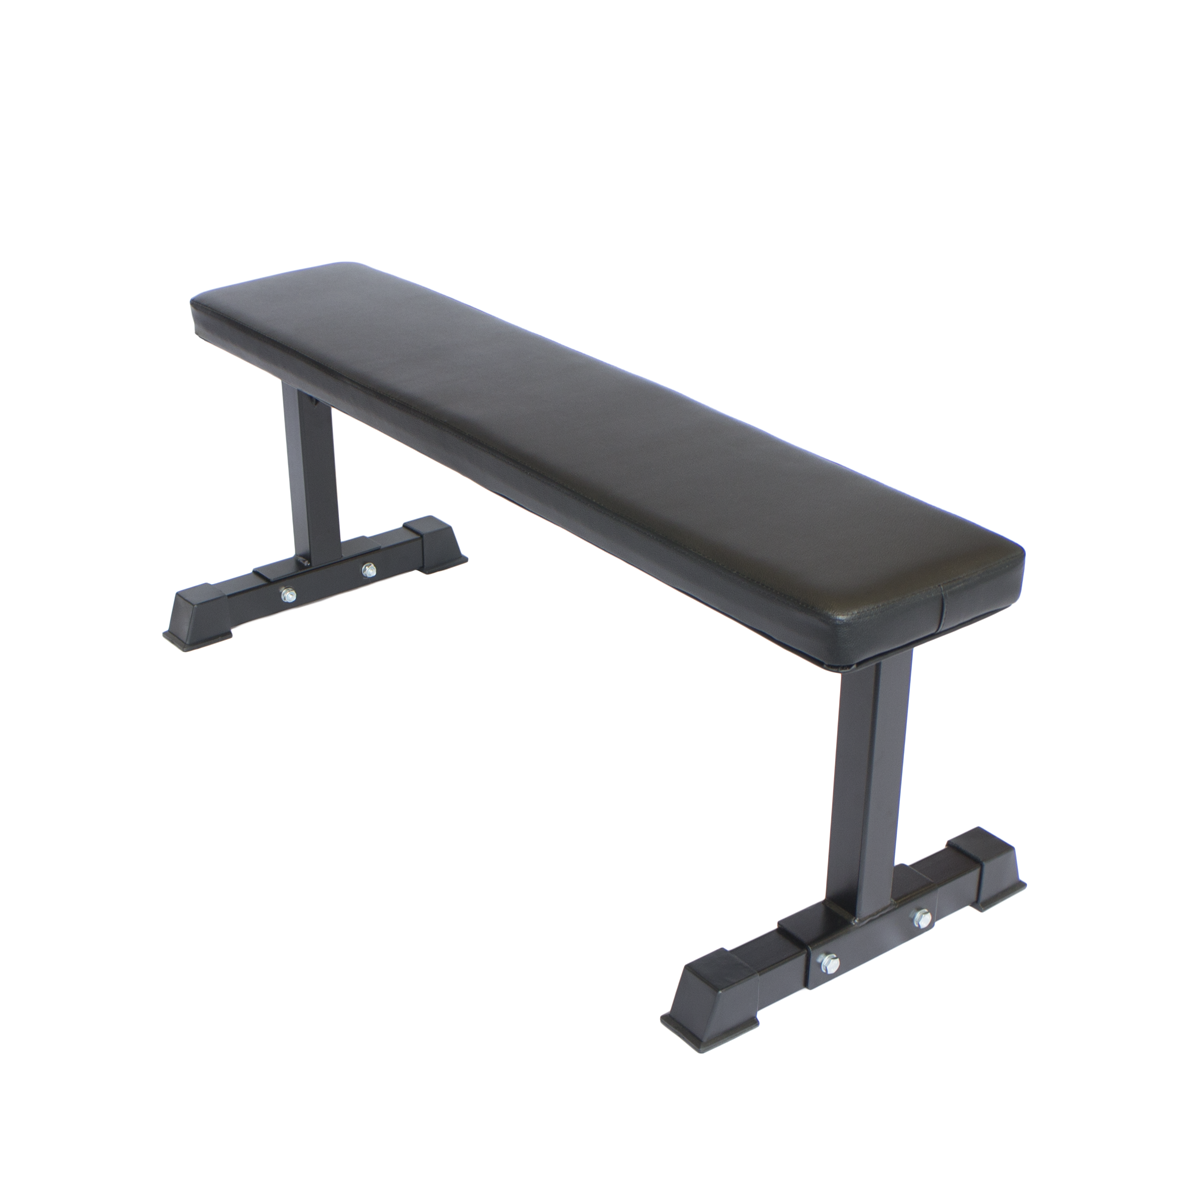 Home u003e Pull Up Rigs u003e Pull Up Rig Accessories u003e Upgrades u003e XB Flat Utility  Bench - Heavy Duty - Exercise Bench PNG